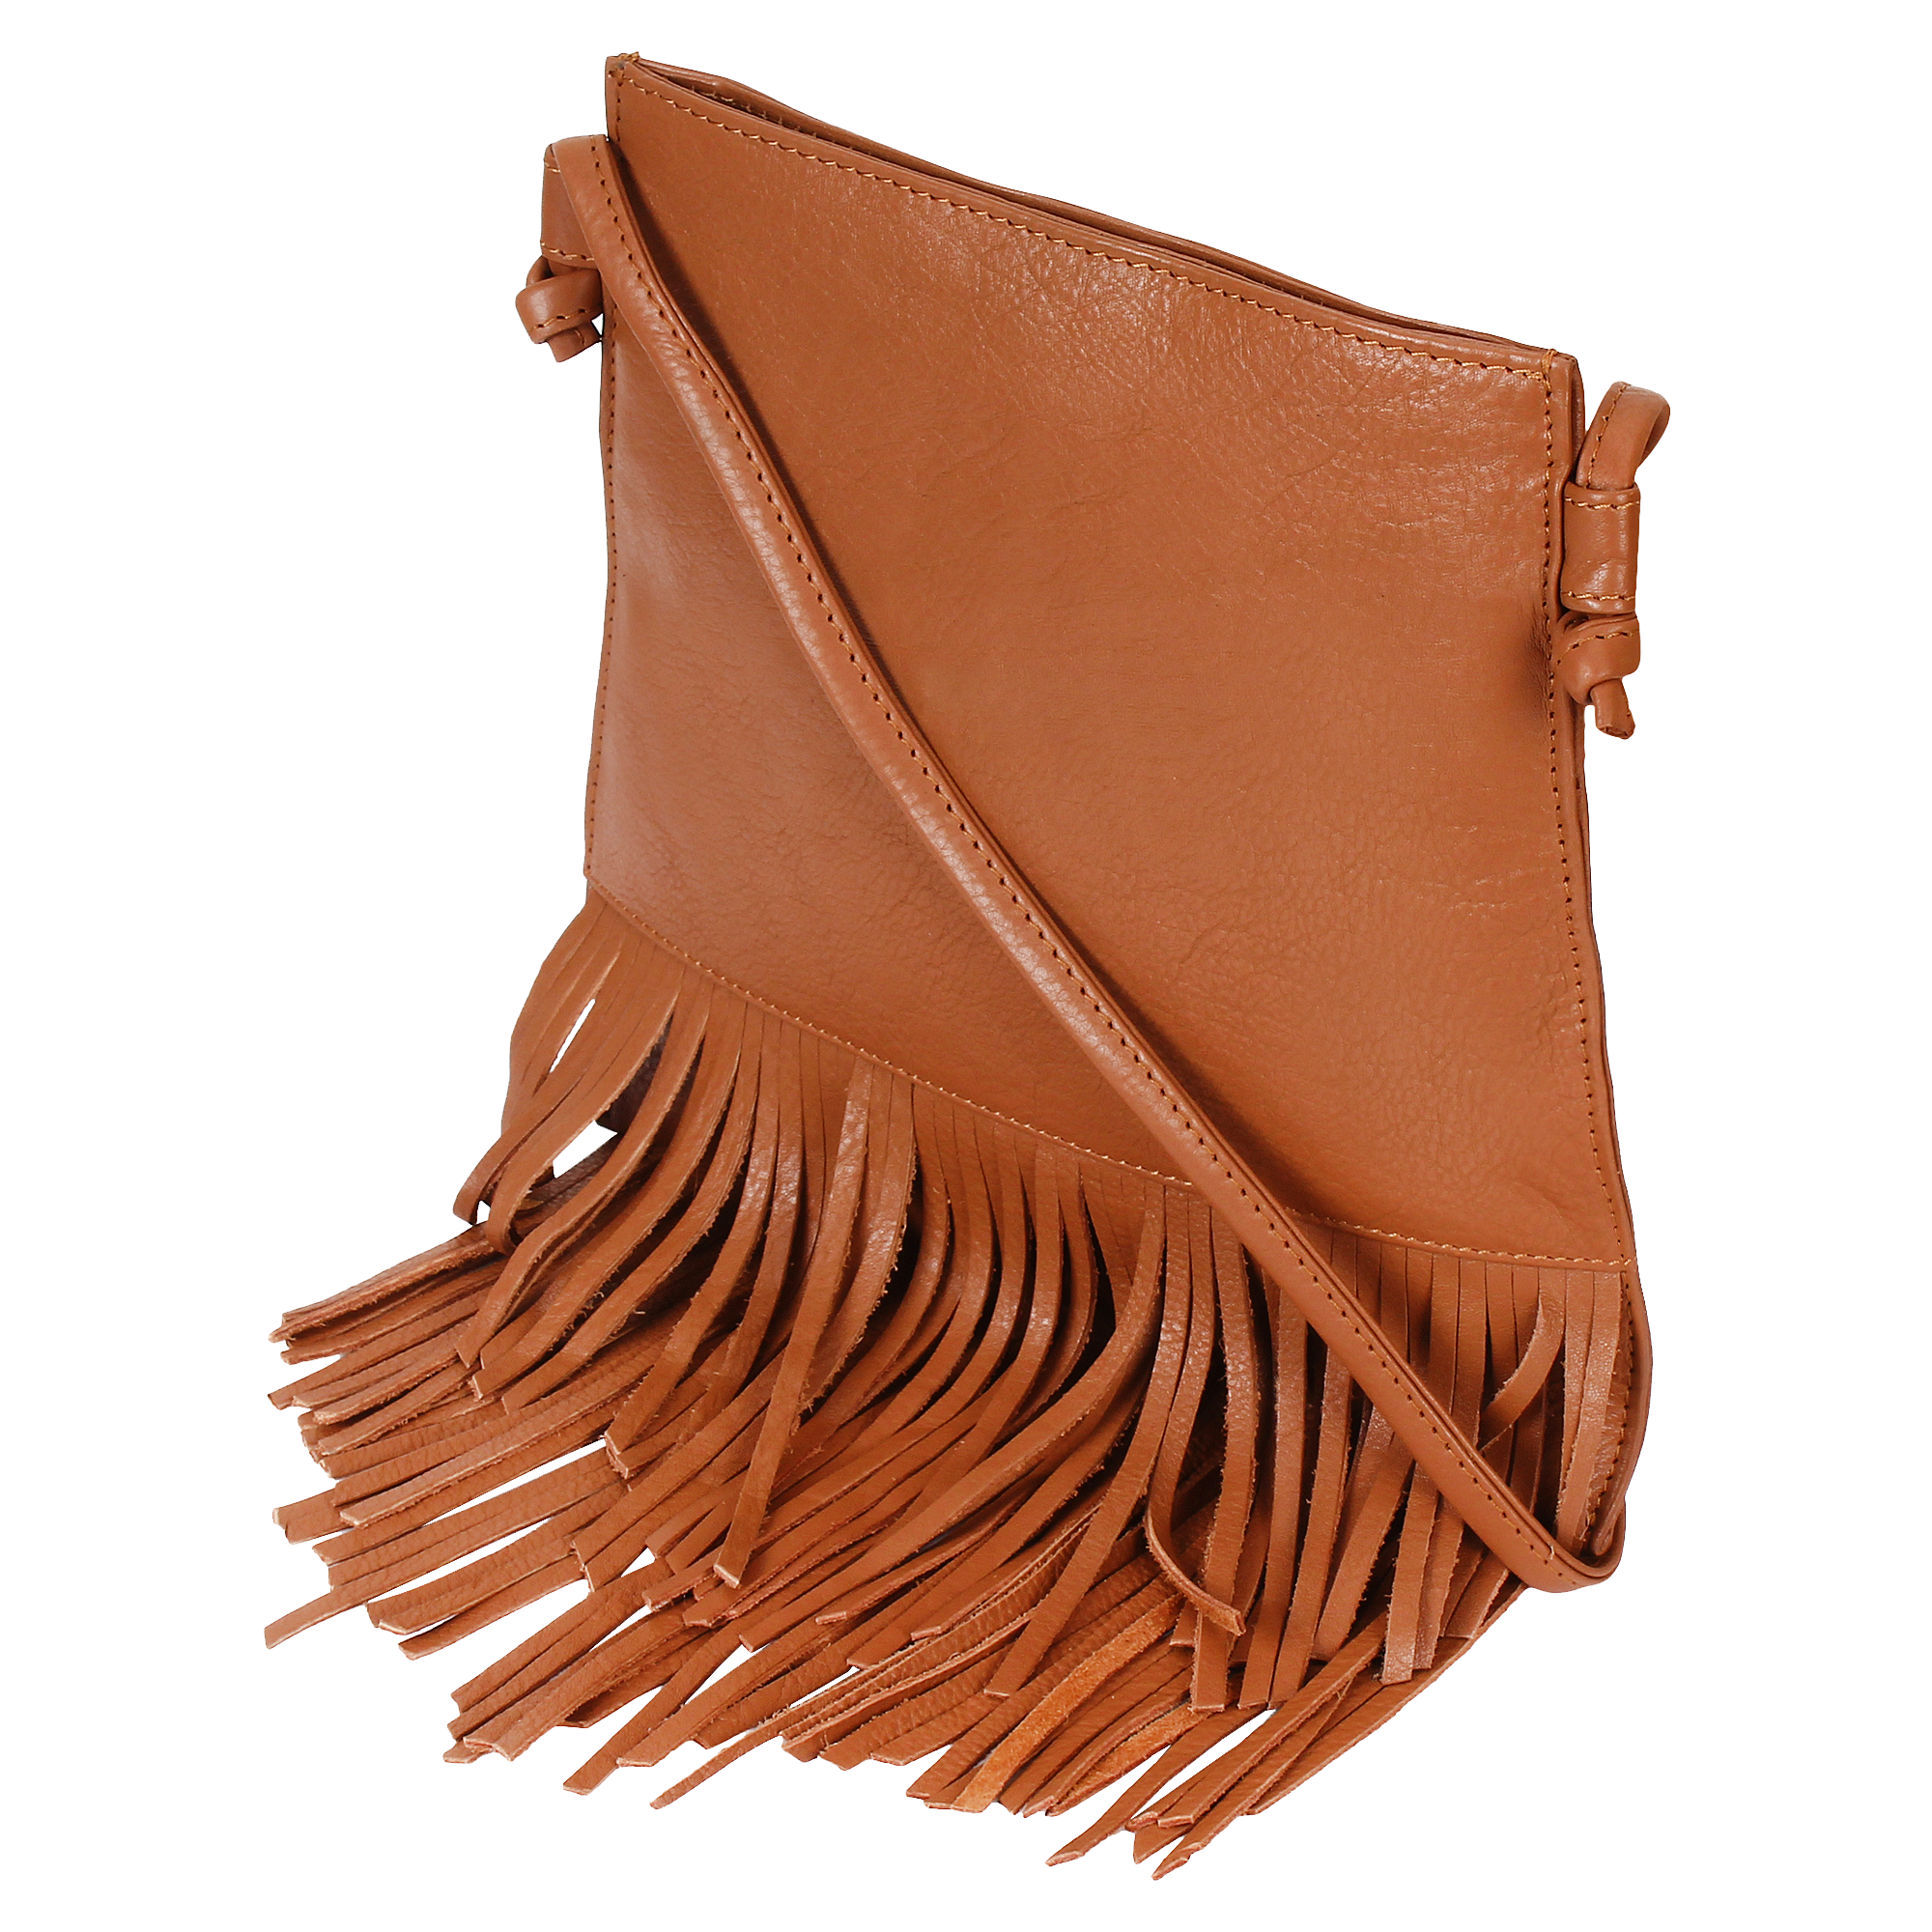 Leather Fringe Crossbody Bag for Women - Ladies Handbag Tassel Shoulder Hobo Bags (Medium, Brown)